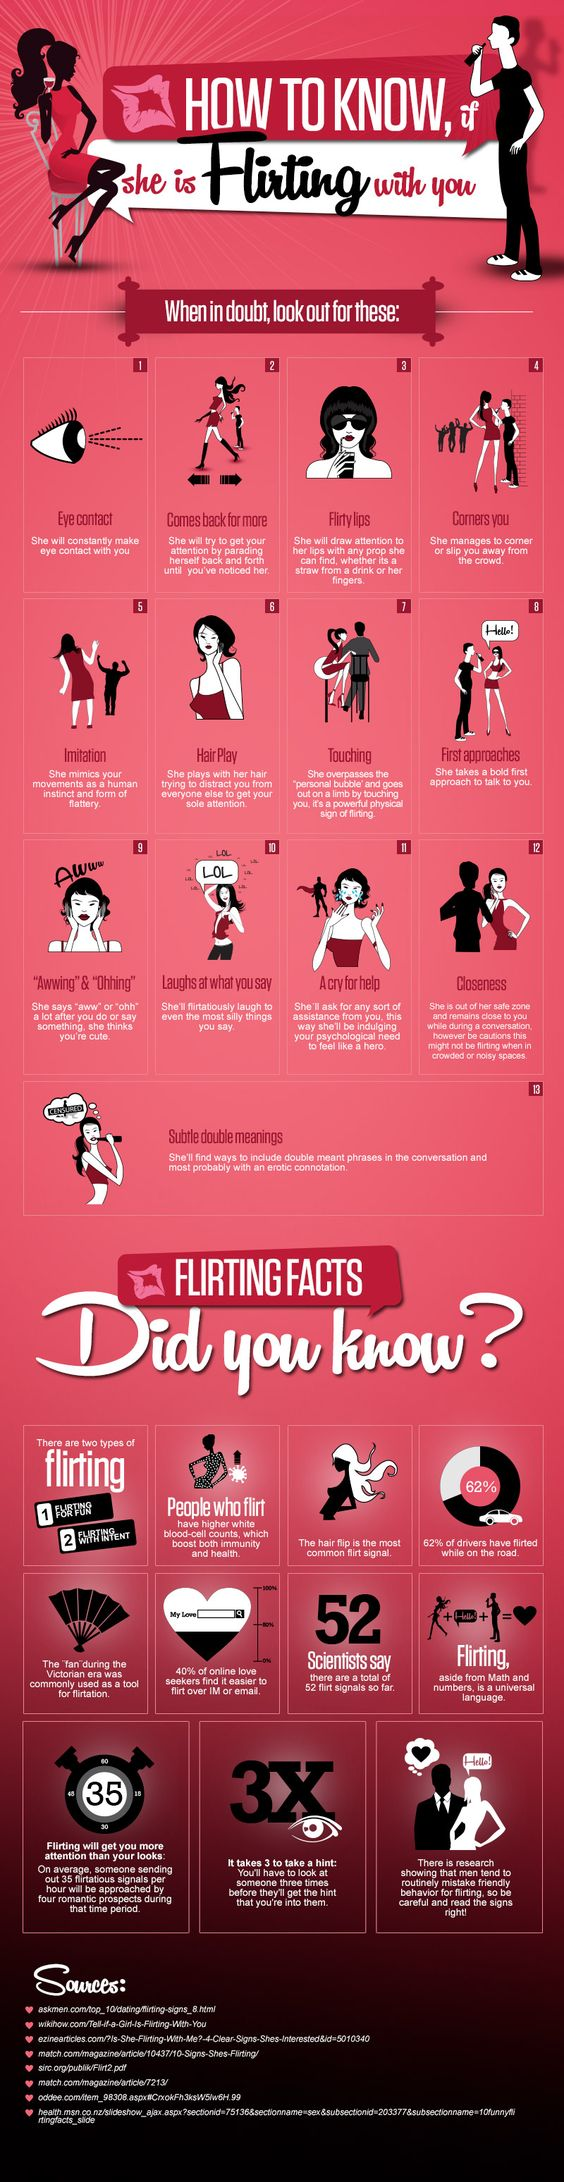 It can be a difficult situation to figure out the signs, if a girl really flirting with you. Because all females react in the different way. Want to know if she is flirting with you? We are about to tell you. Below infographic illustrate amazing flirting facts and 13 signs, when in doubt, look out of these.  http://www.digitalinformationworld.com/2013/04/13-signs-if-she-is-flirting-with-you.html #relationships #flirting #howto: